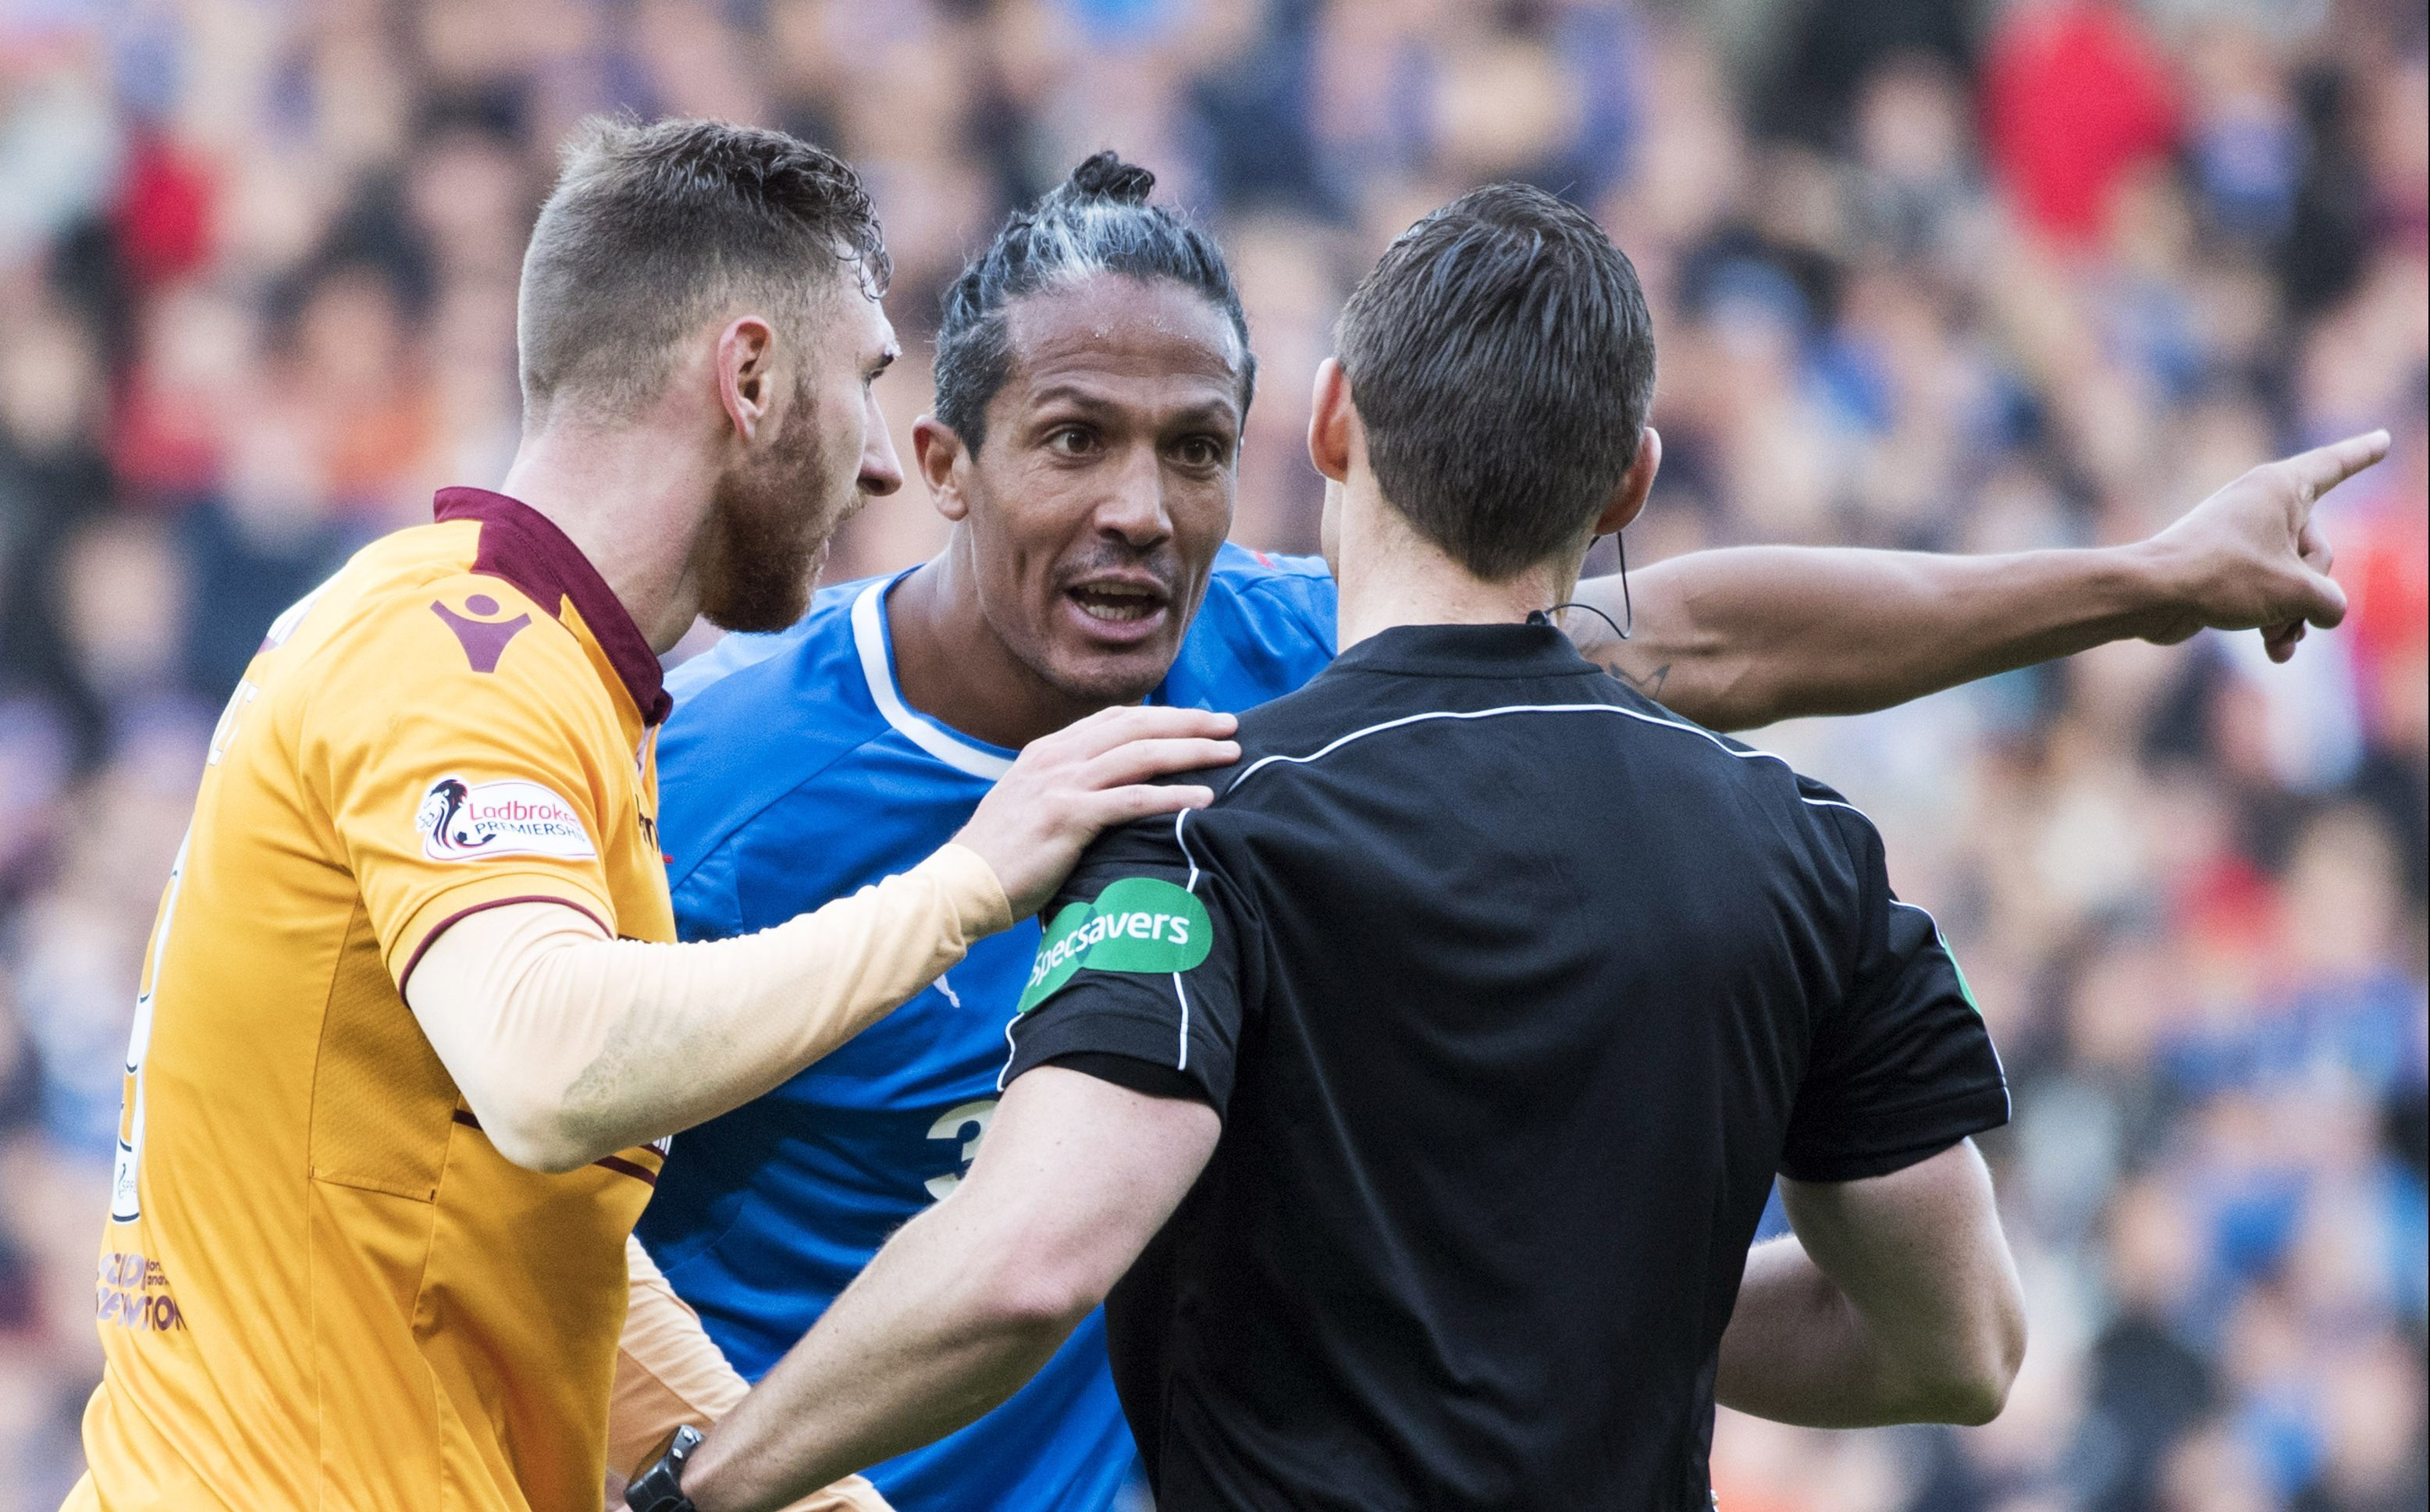 Rangers Bruno Alves (R) speaks with the referee and Motherwell's Louis Moult (SNS Group)